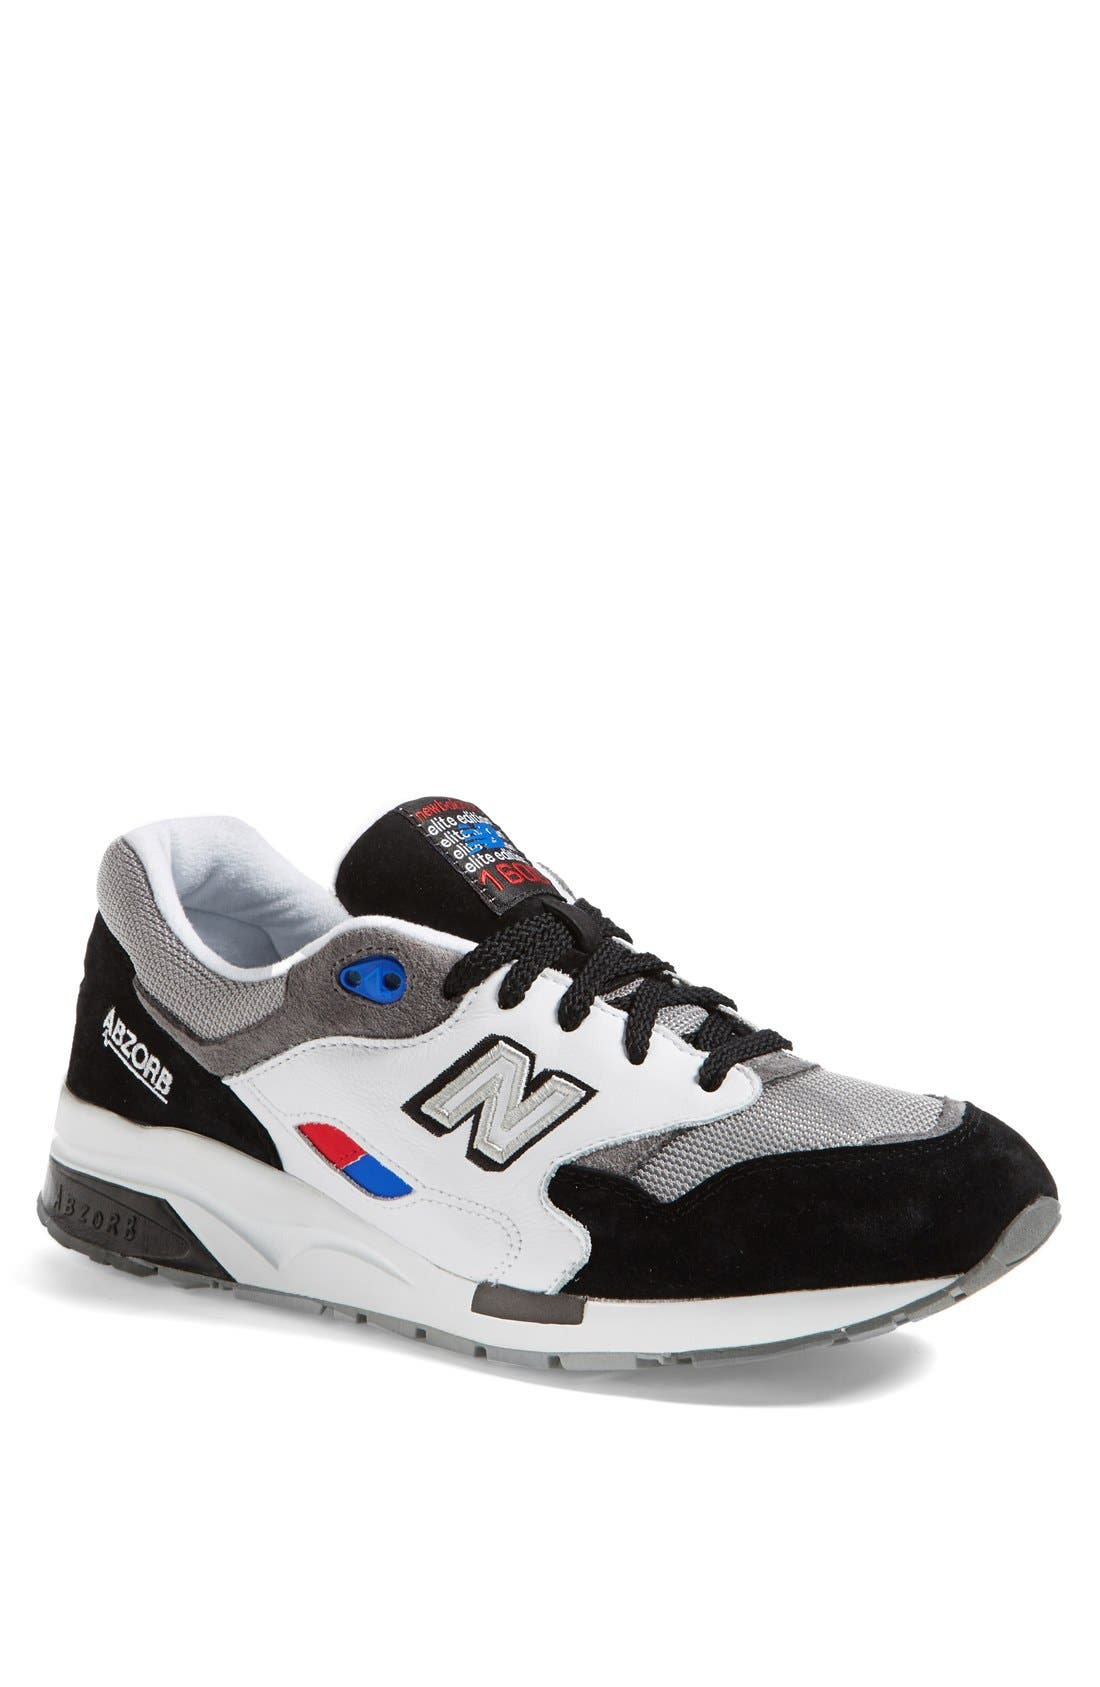 Main Image - New Balance '1600' Sneaker (Men)